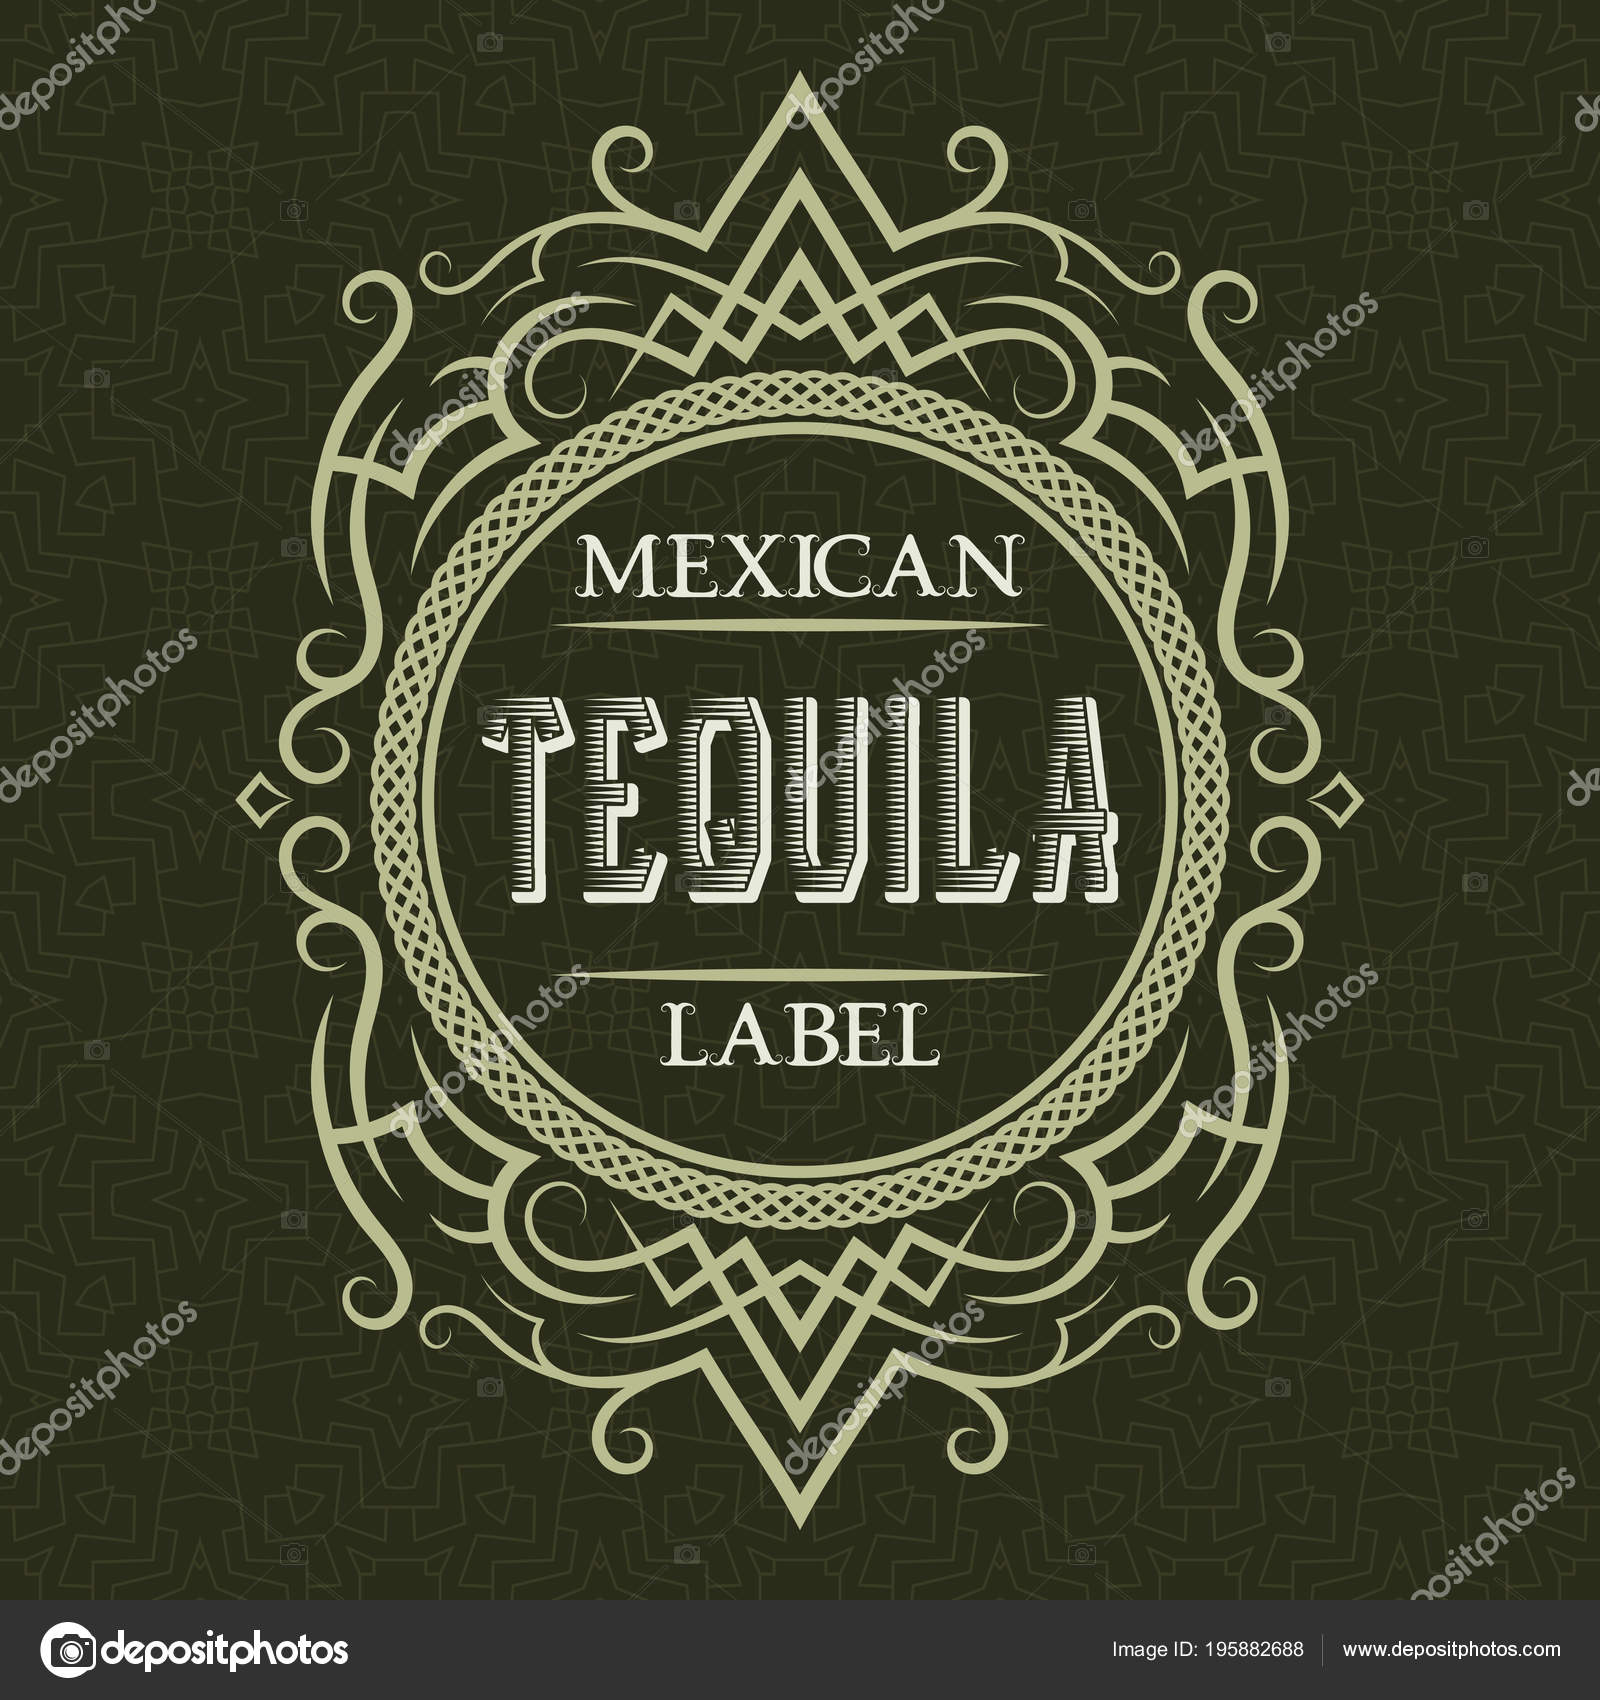 Tequila Mexican Label Design Template Patterned Vintage Frame Text ...